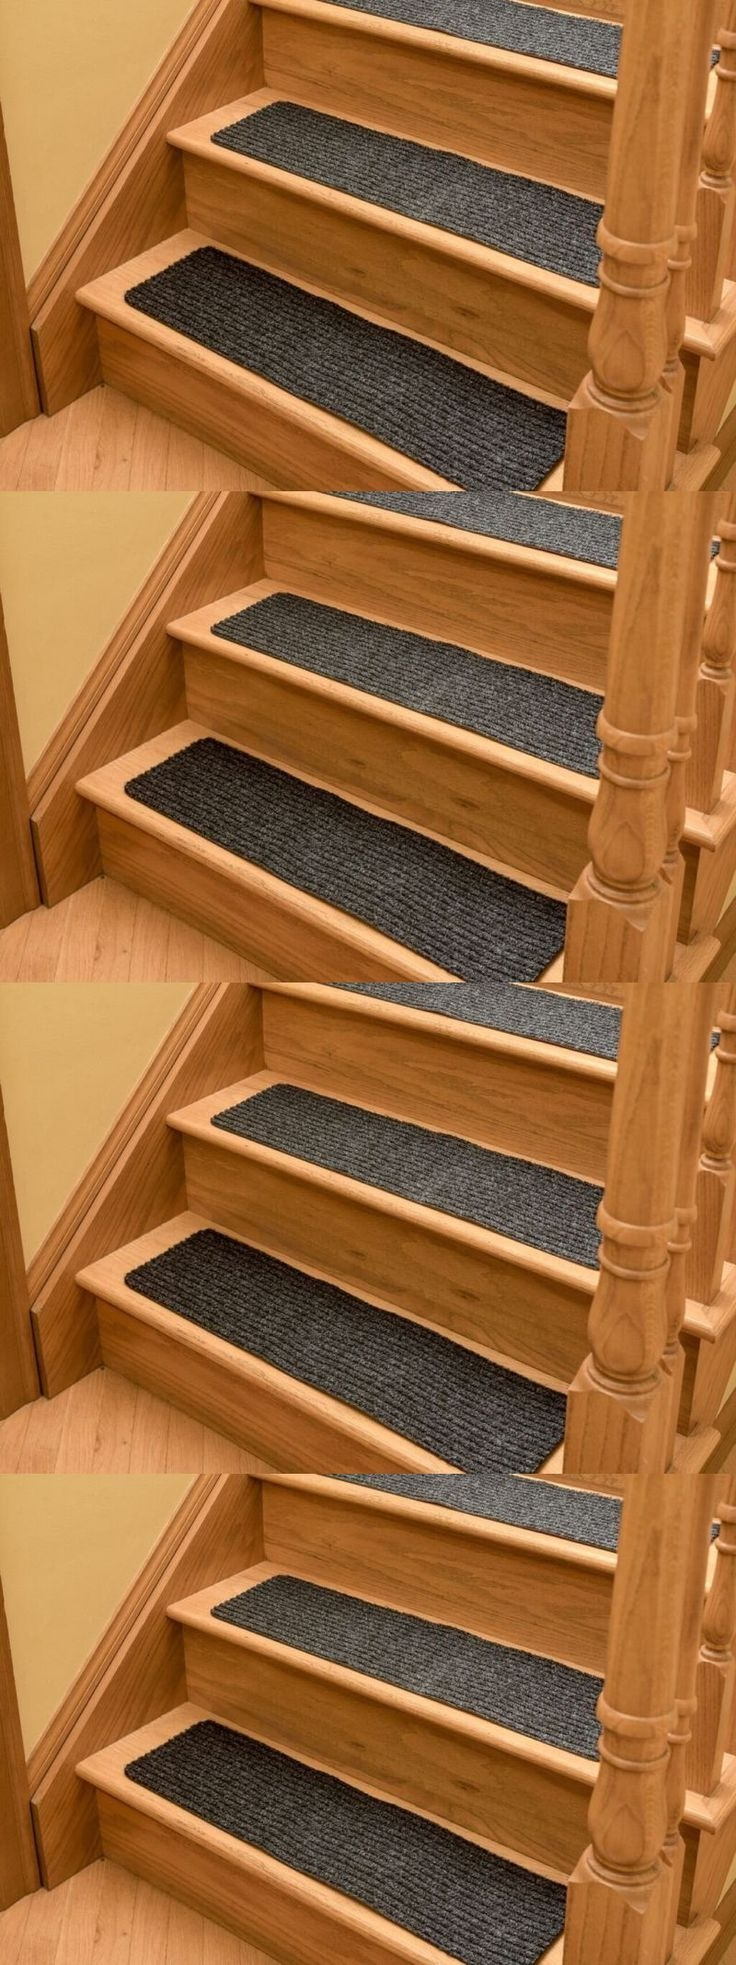 Best 25 Carpets Ideas On Pinterest: 20 Best Collection Of Carpet For Wood Stairs